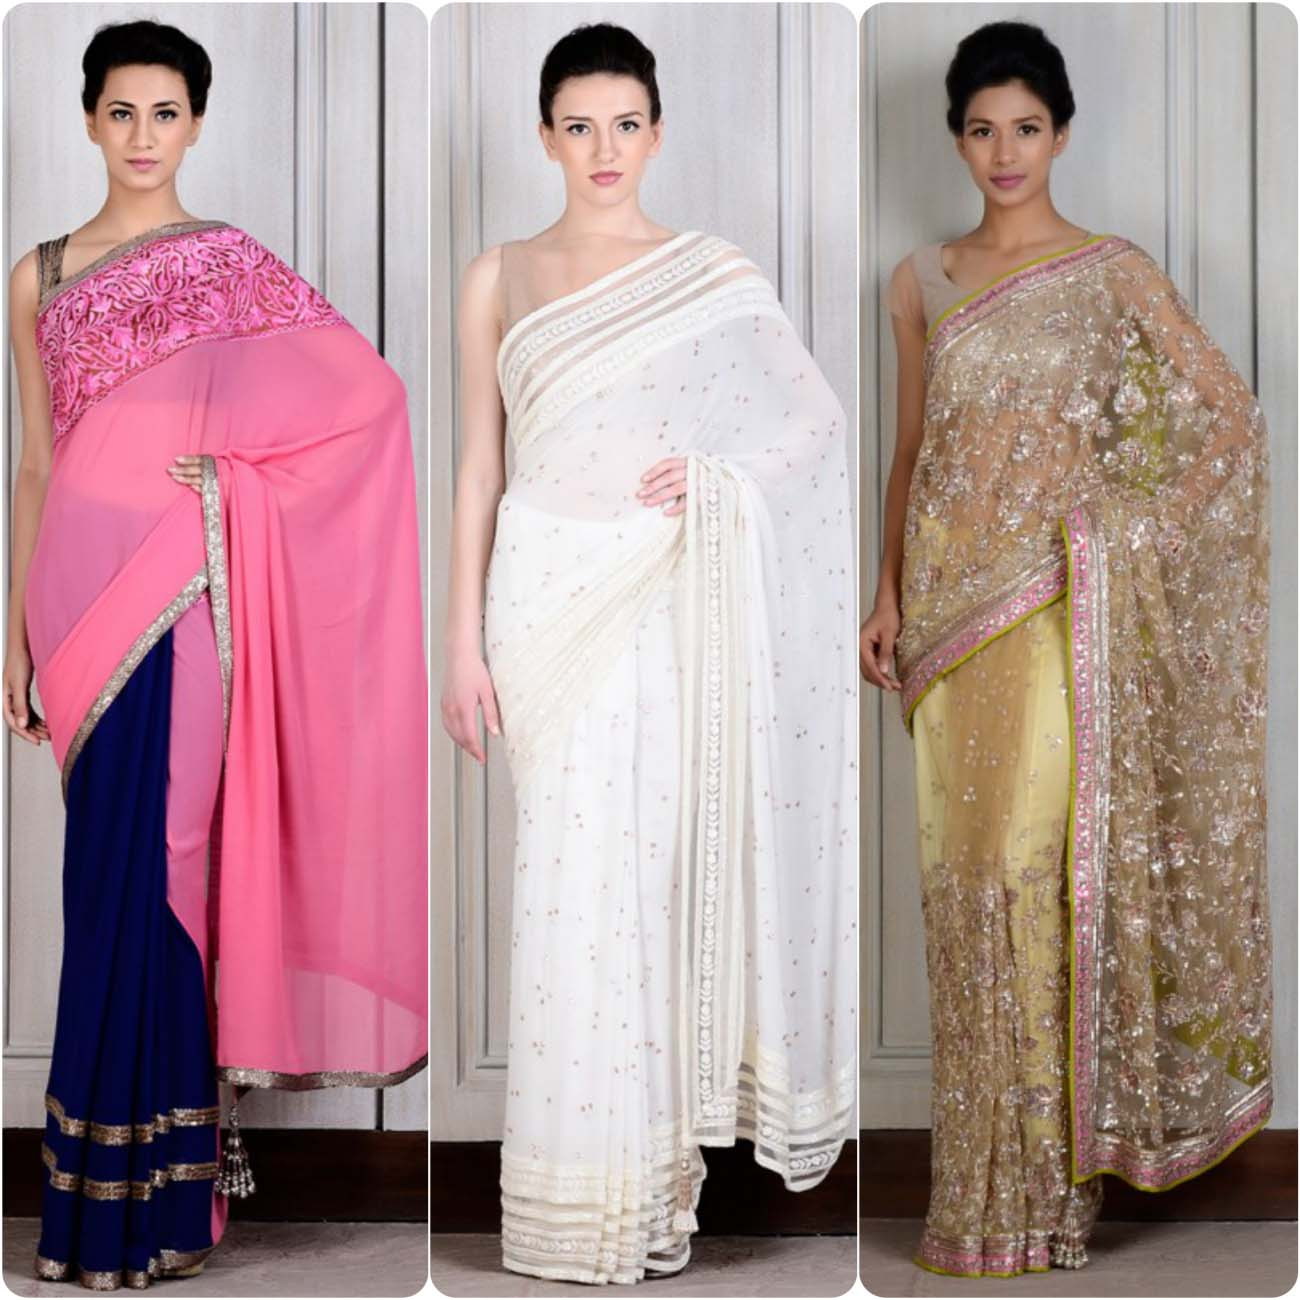 To acquire Malhotra manish latest saree designs pictures trends